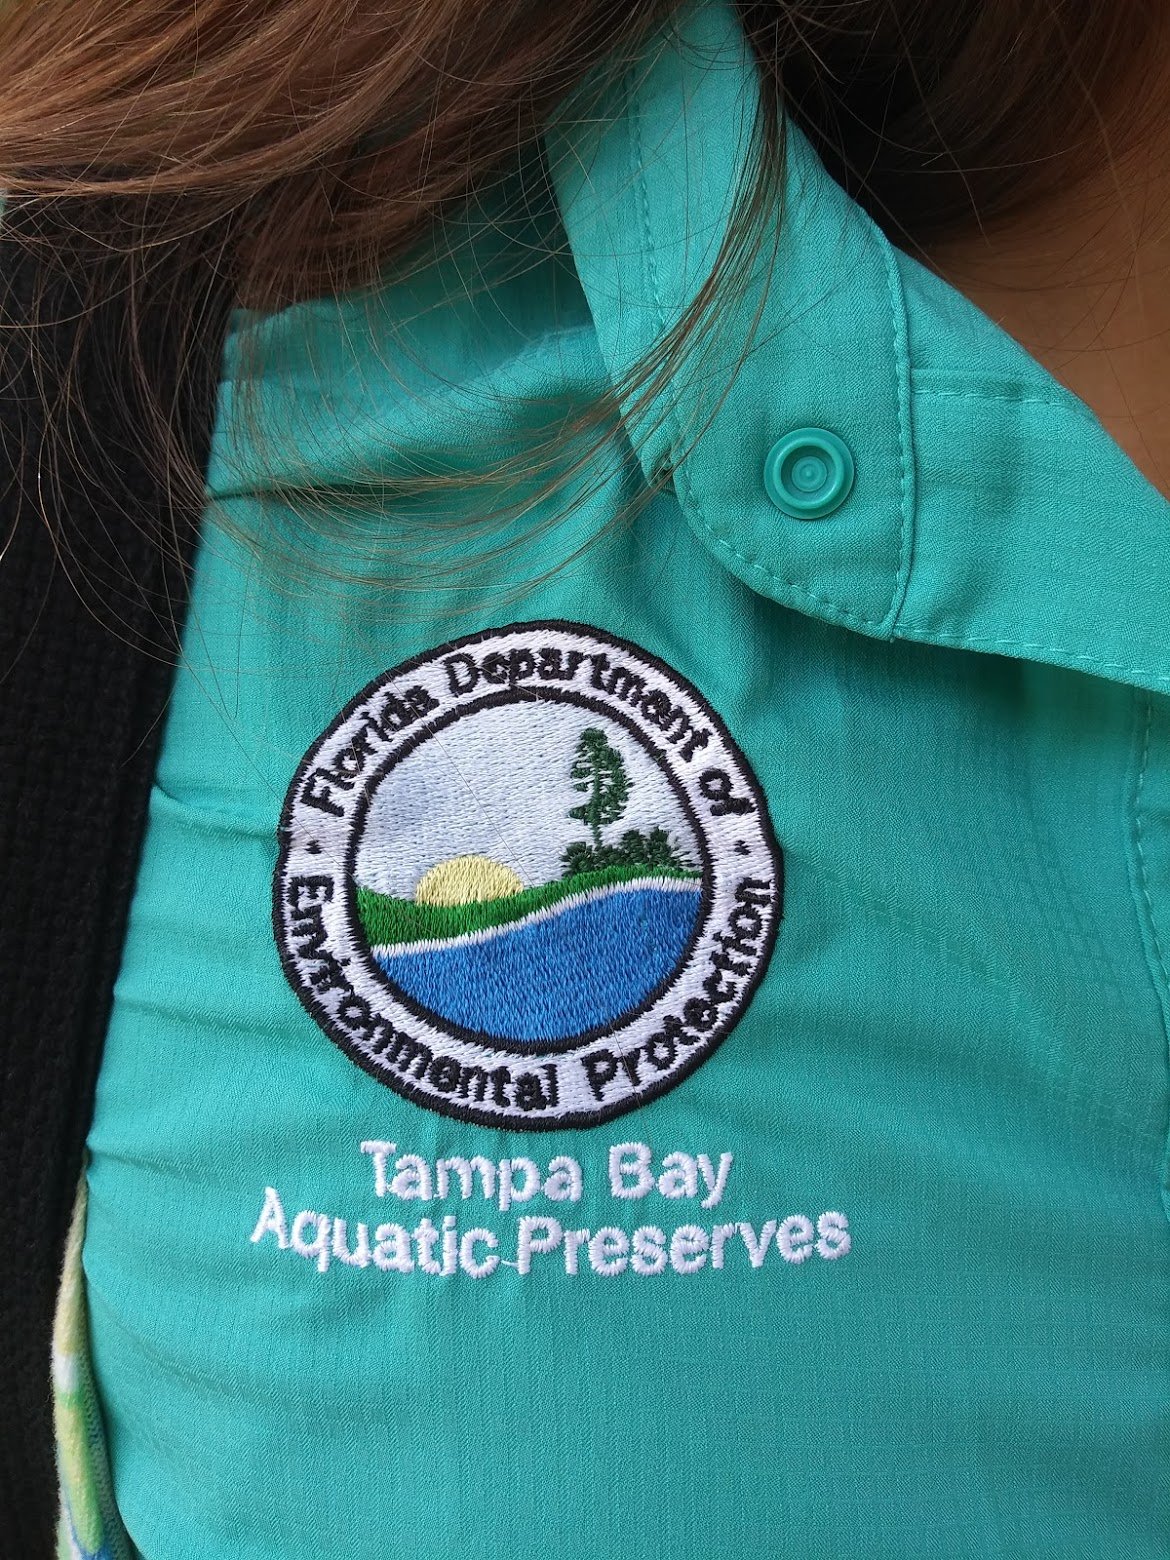 """A closeup of a patch on a green-blue shirt that reads """"Tampa Bay Aquatic Preserves"""""""